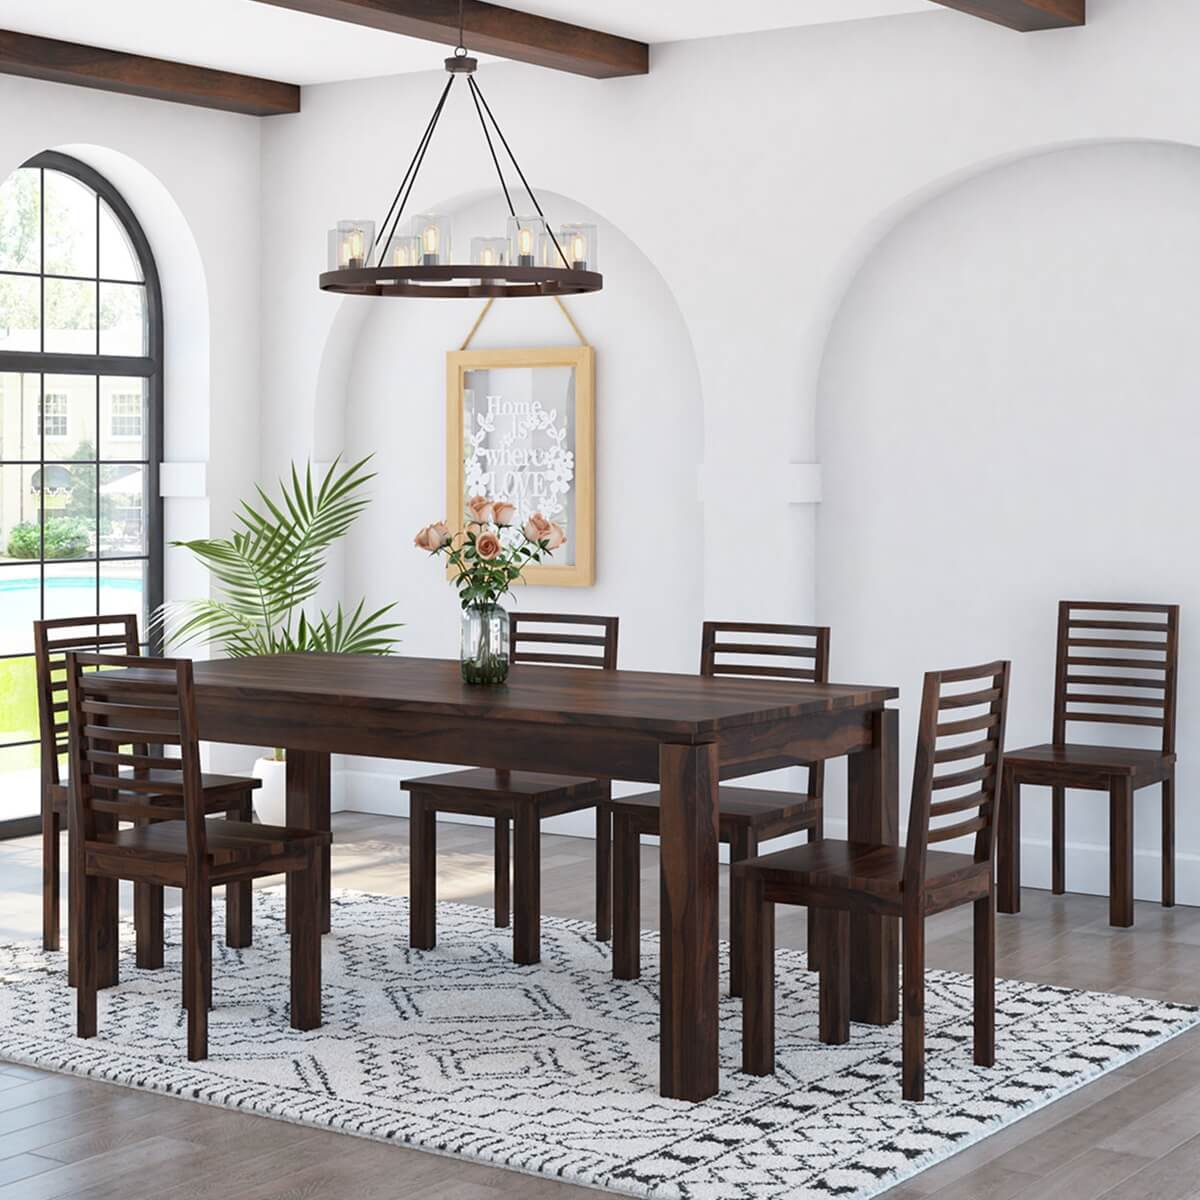 Wonderful image of Classic Comfort Mango Wood 60 Dining Table 4 Upholstered Chairs with #B48317 color and 1200x1200 pixels